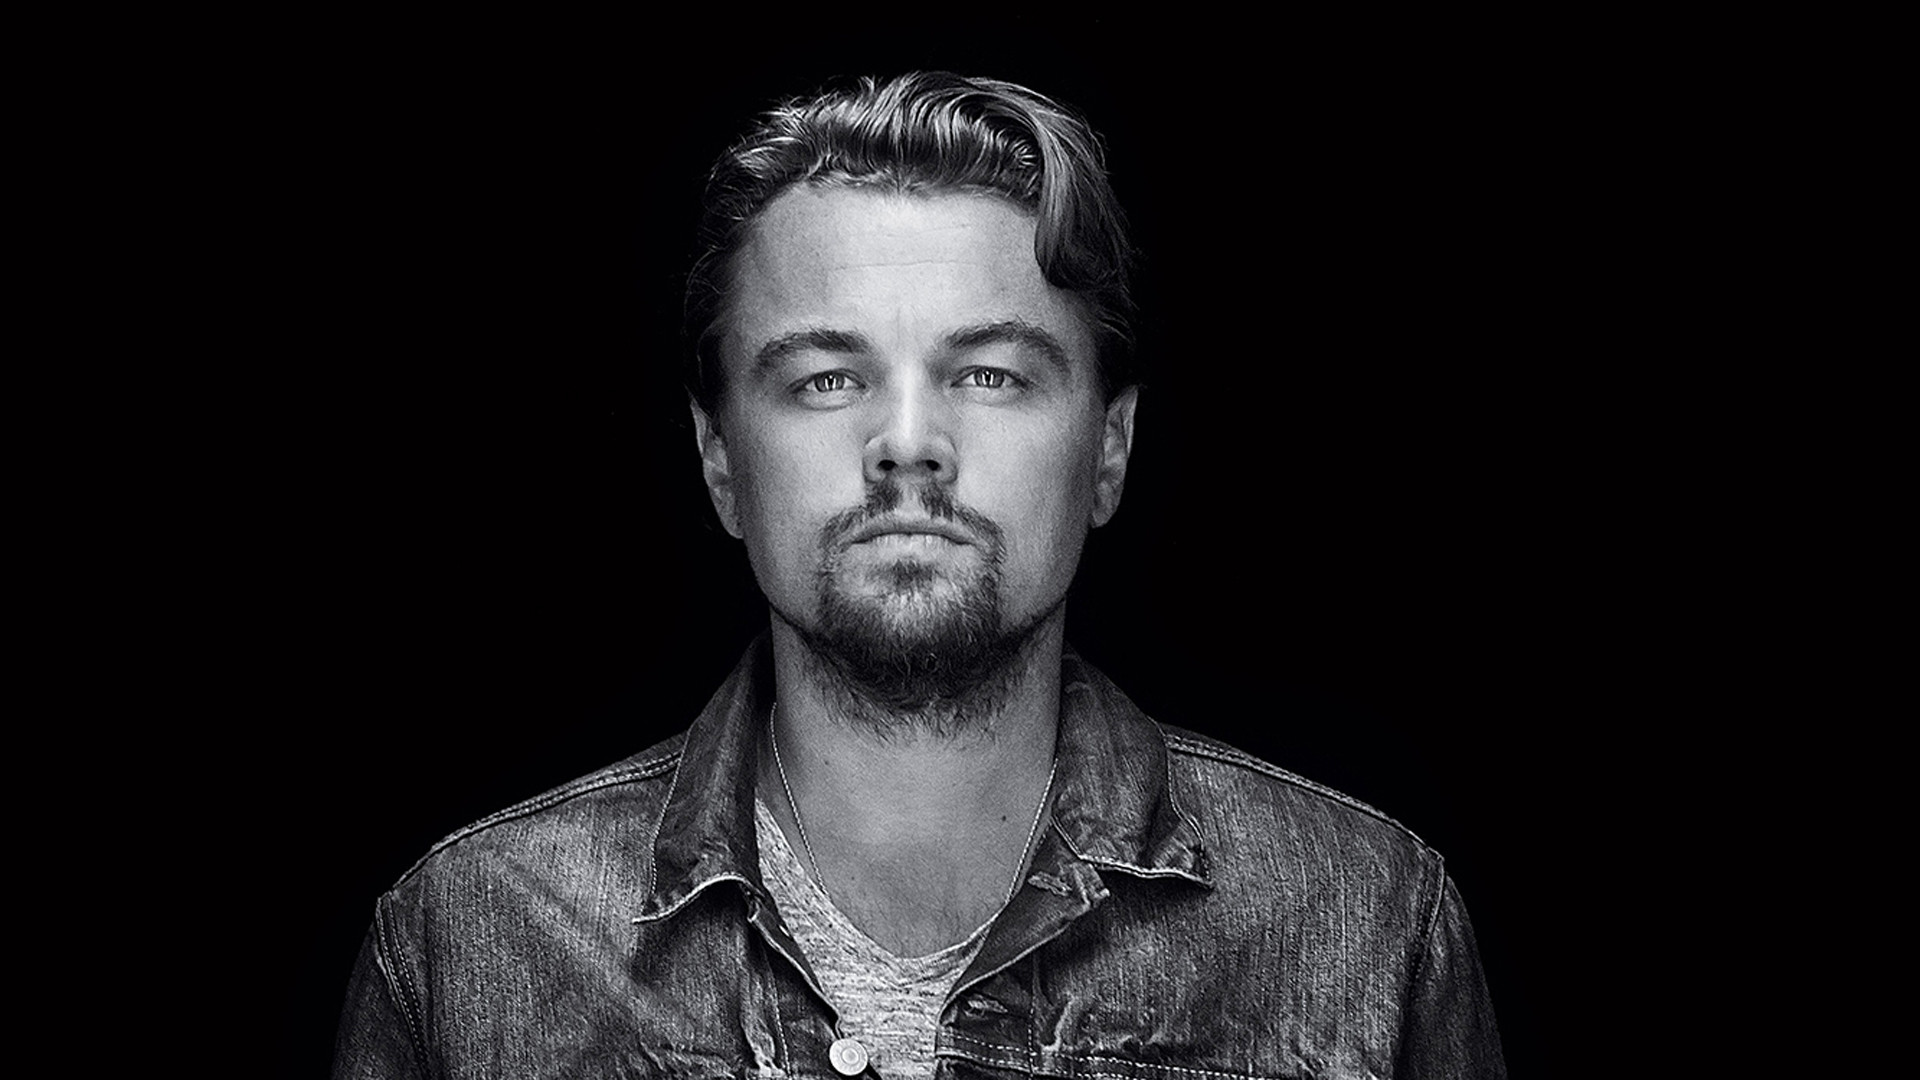 1920x1080 Leonardo DiCaprio High Definition Wallpapers